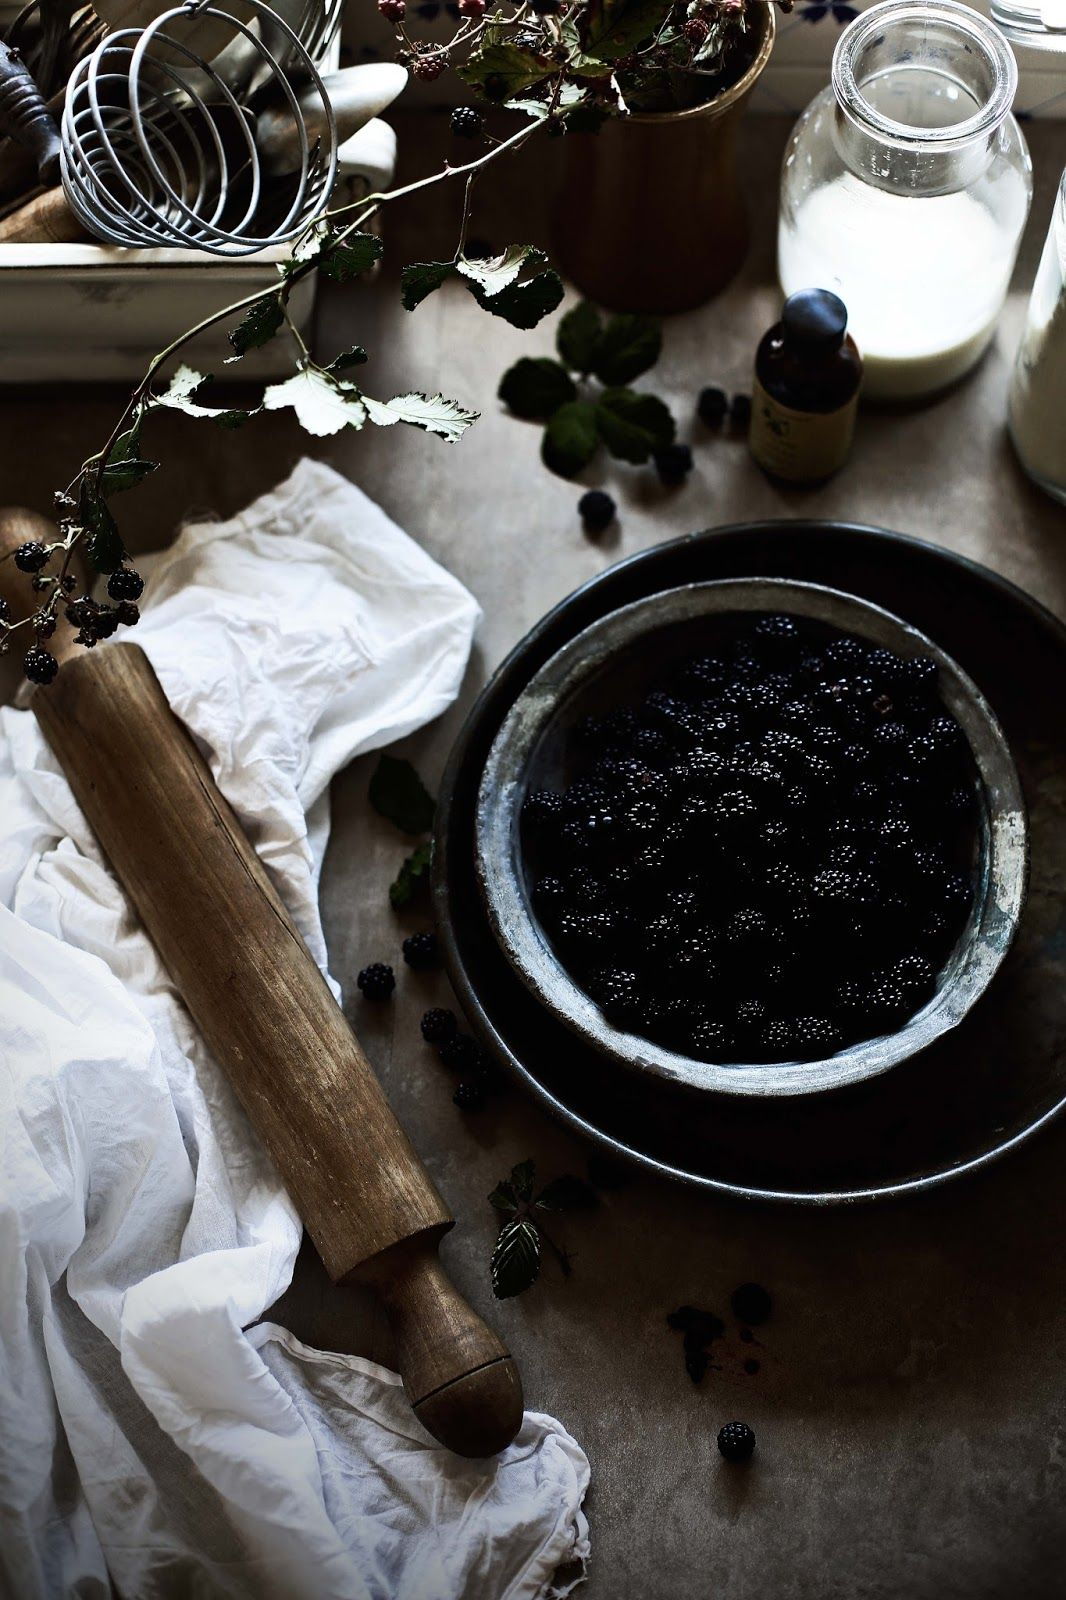 Blackberries - Pratos e Travessas | Food, photography and stories